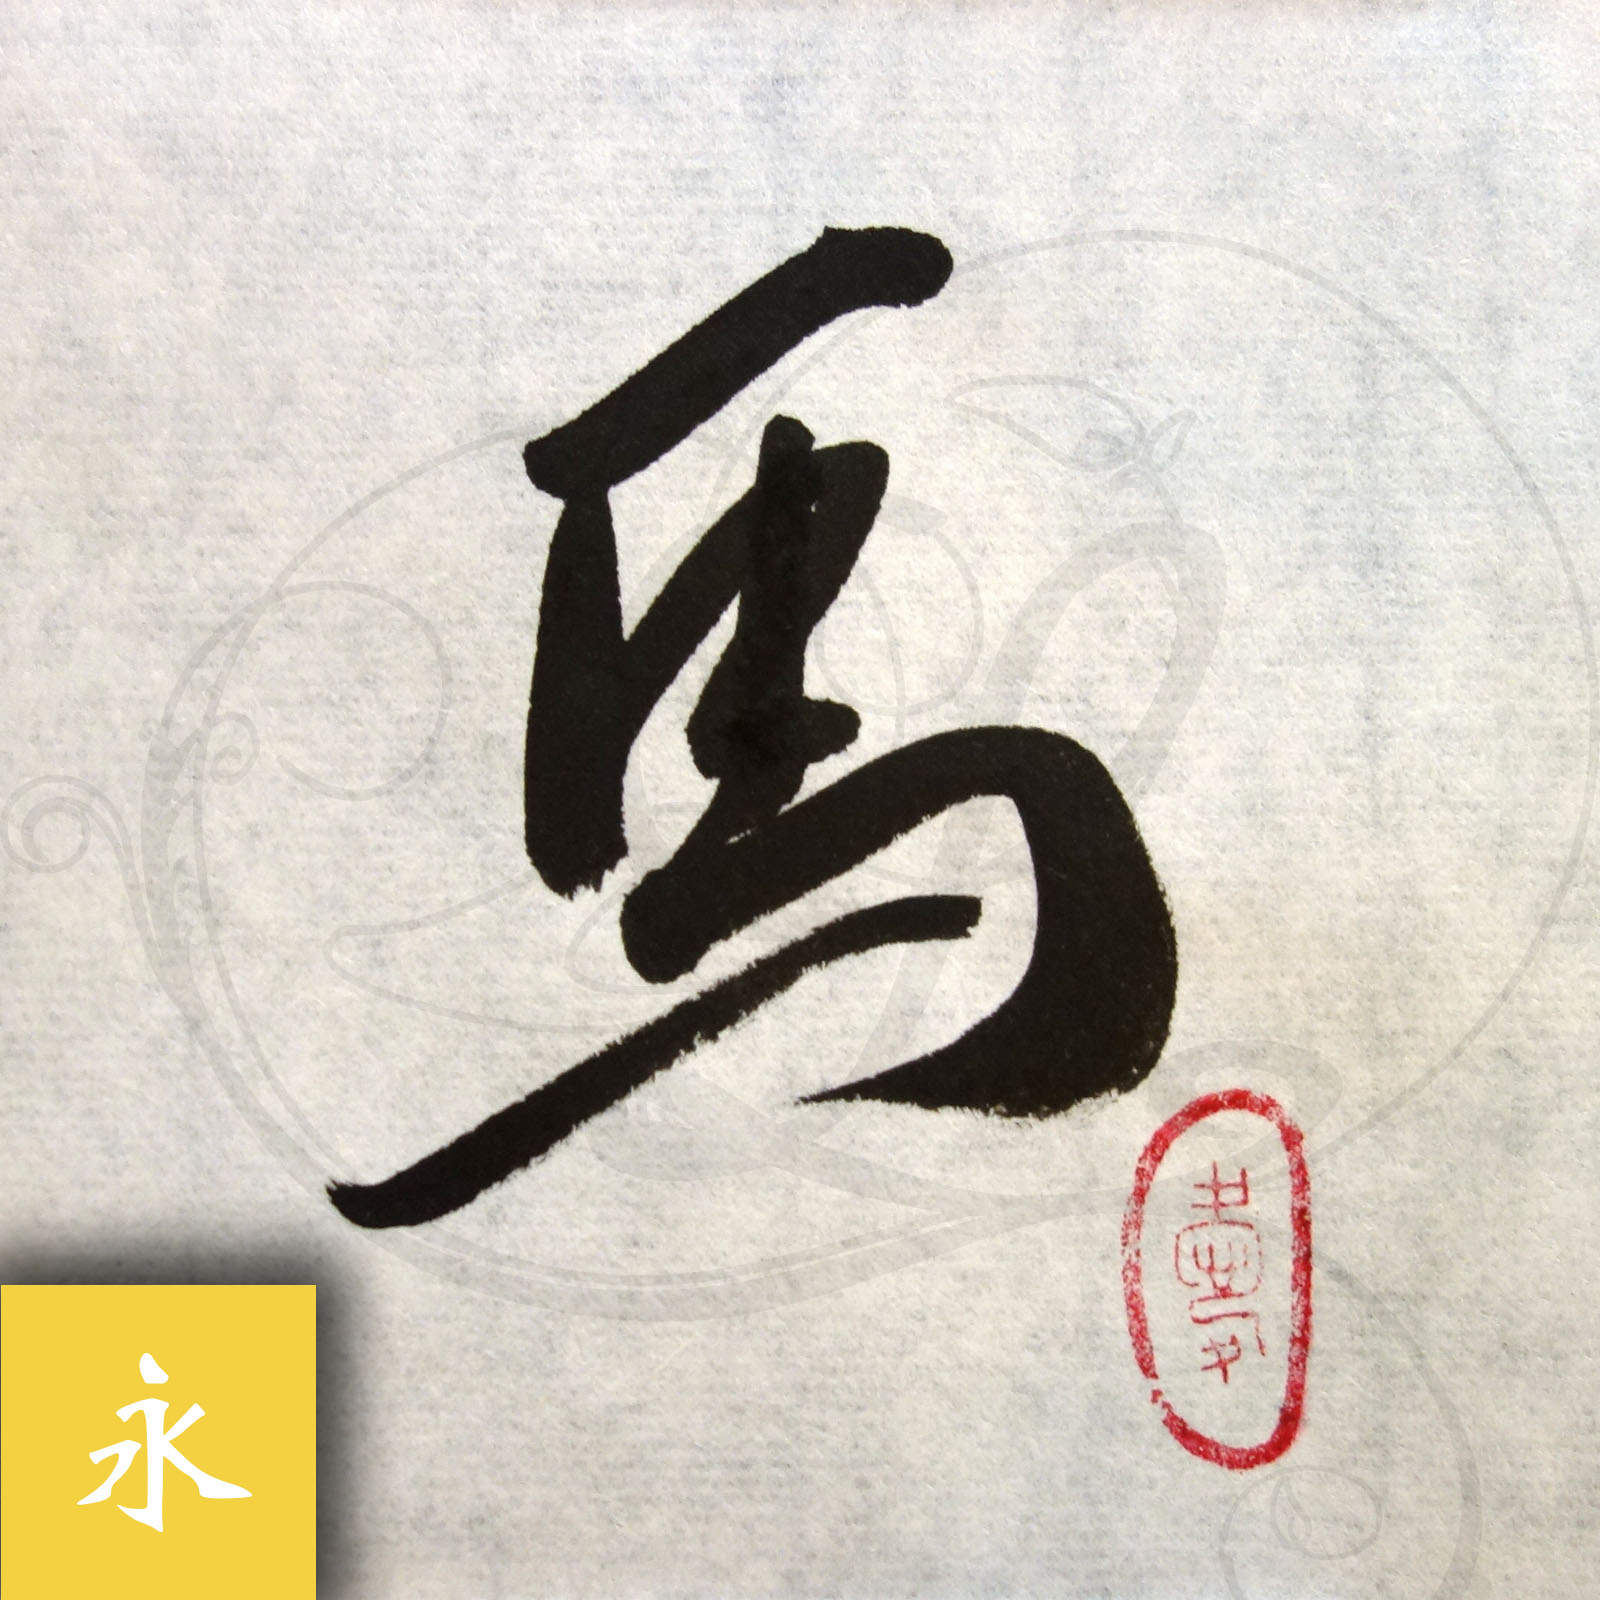 1-calligraphie-chinoise-zodiaque-cheval-xinshu-01